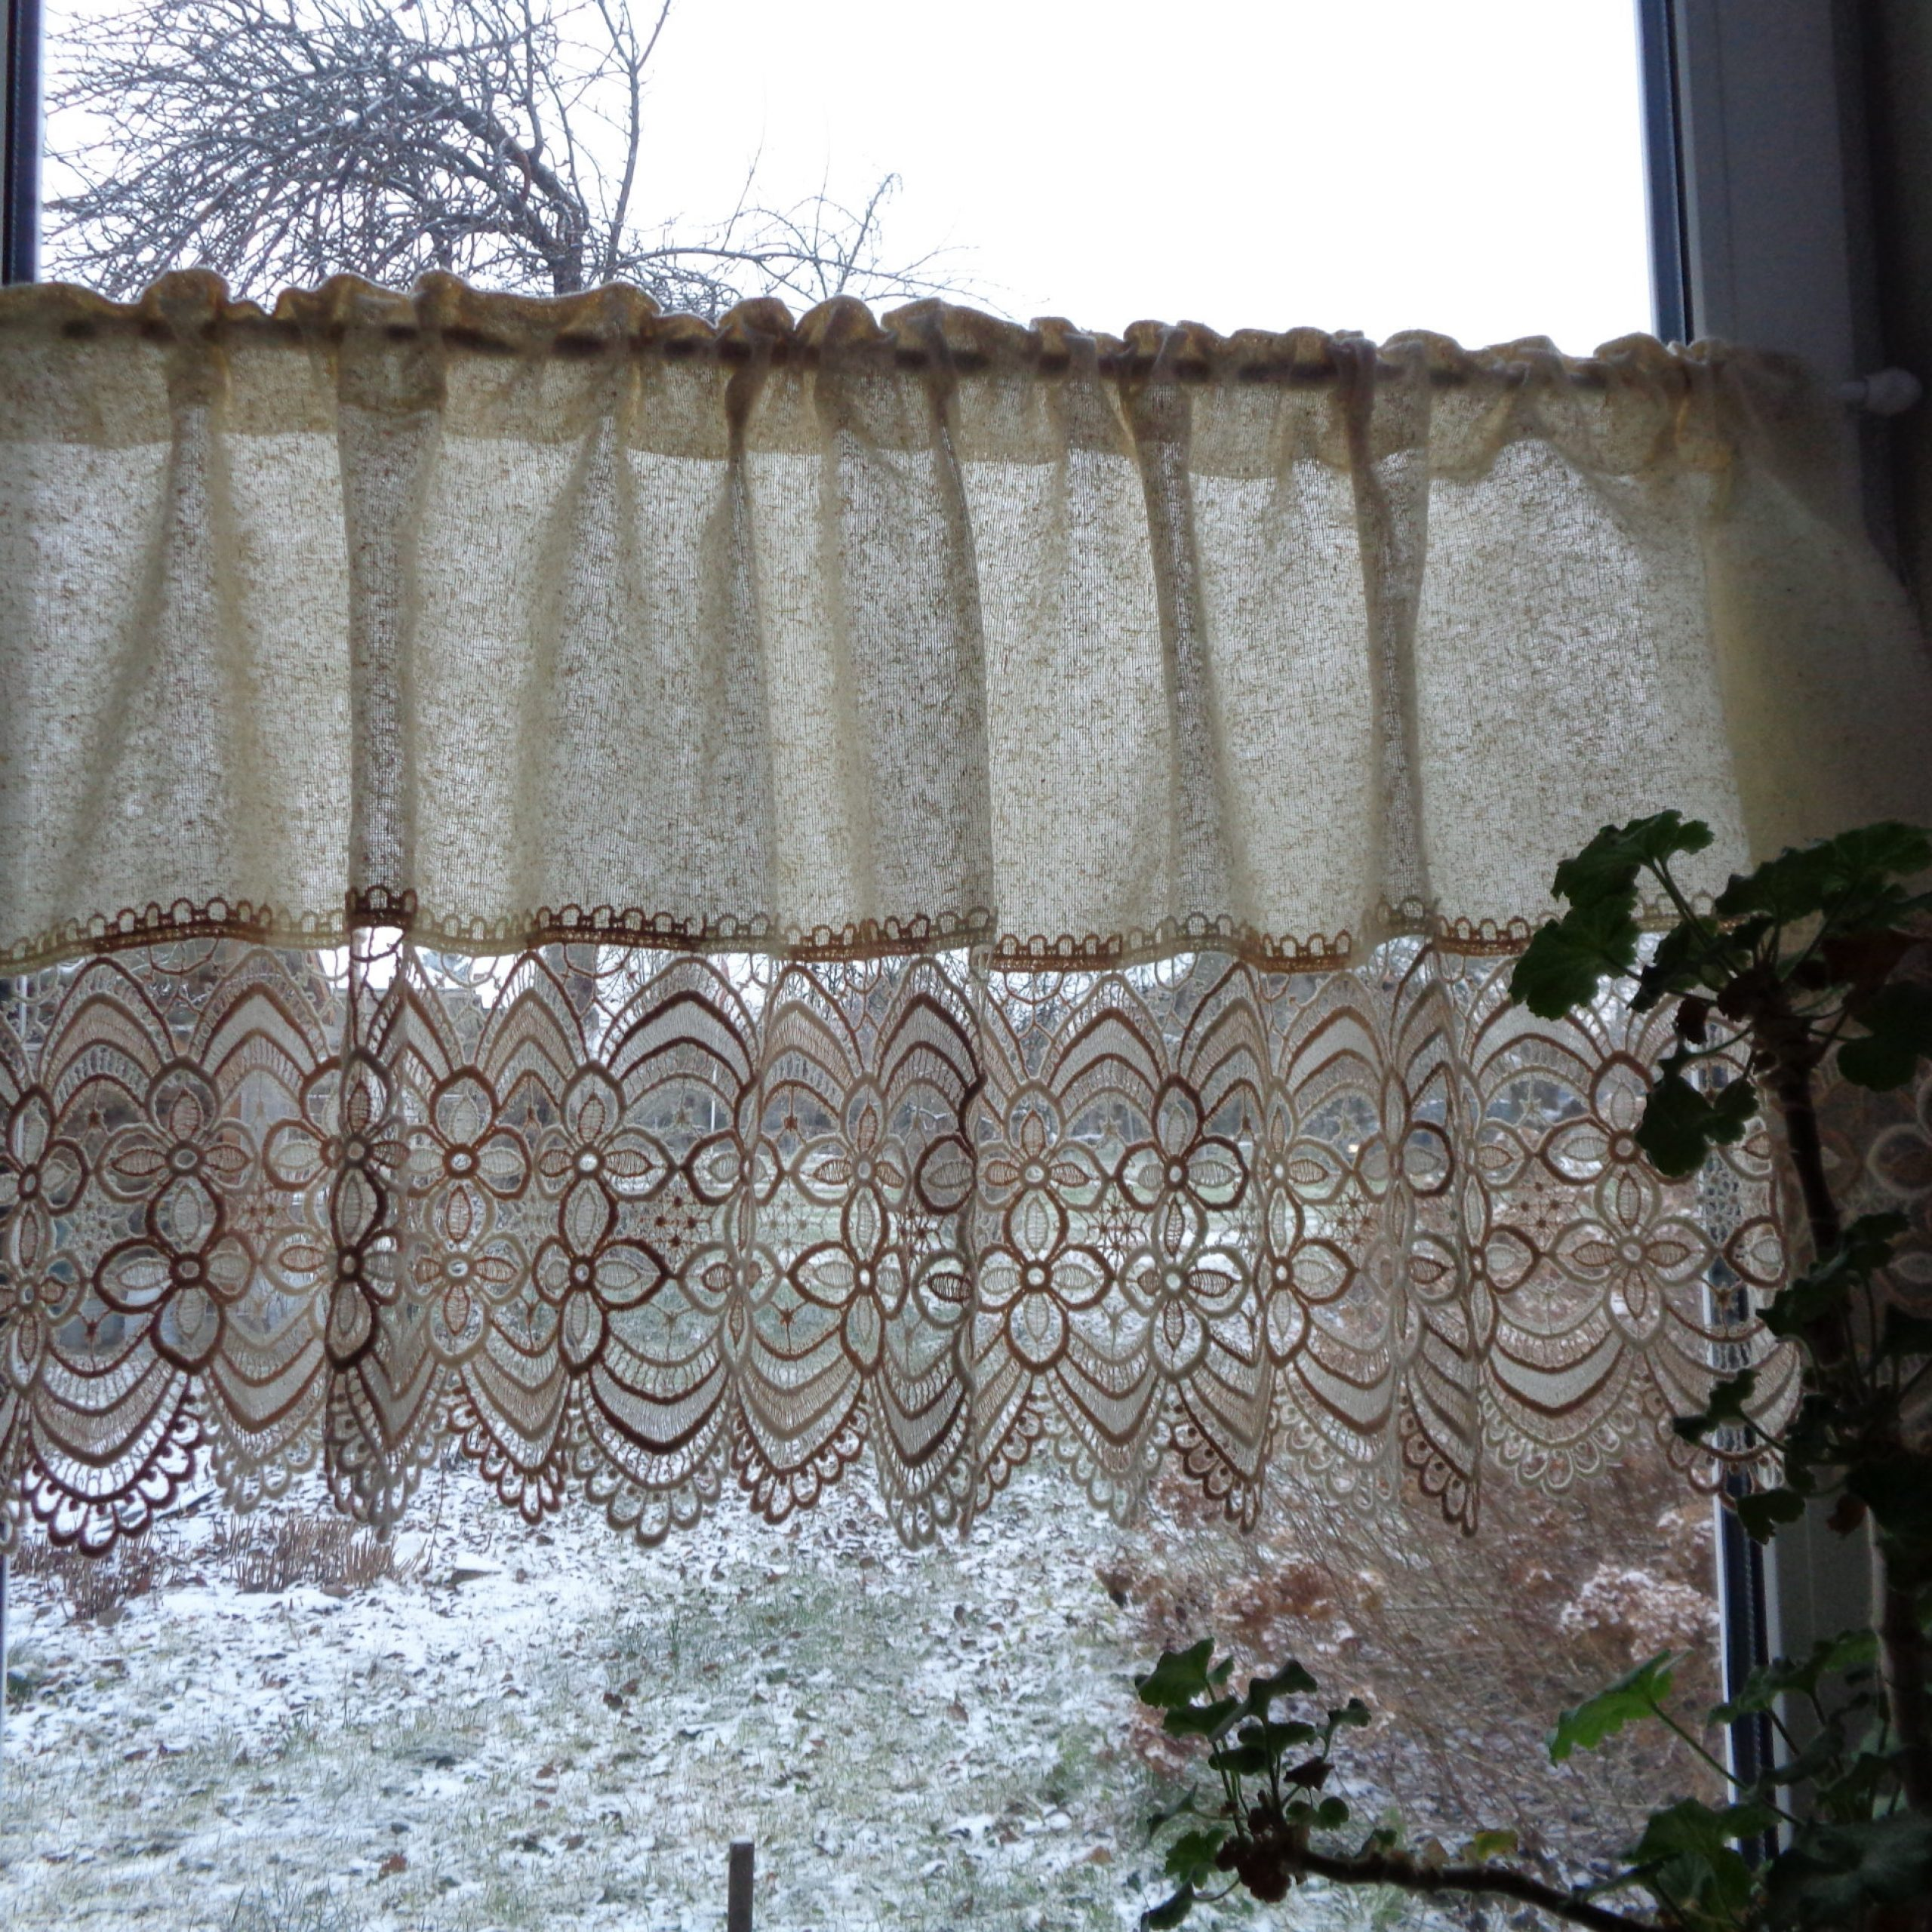 """Vintage Fabric & Lace Curtain; Beige Privacy Curtain With Venice Lace H22""""x W56"""" Rustic Curtain, Kitchen Curtain; Cottage Chic Curtain Inside Current Ivory Knit Lace Bird Motif Window Curtain (View 16 of 20)"""